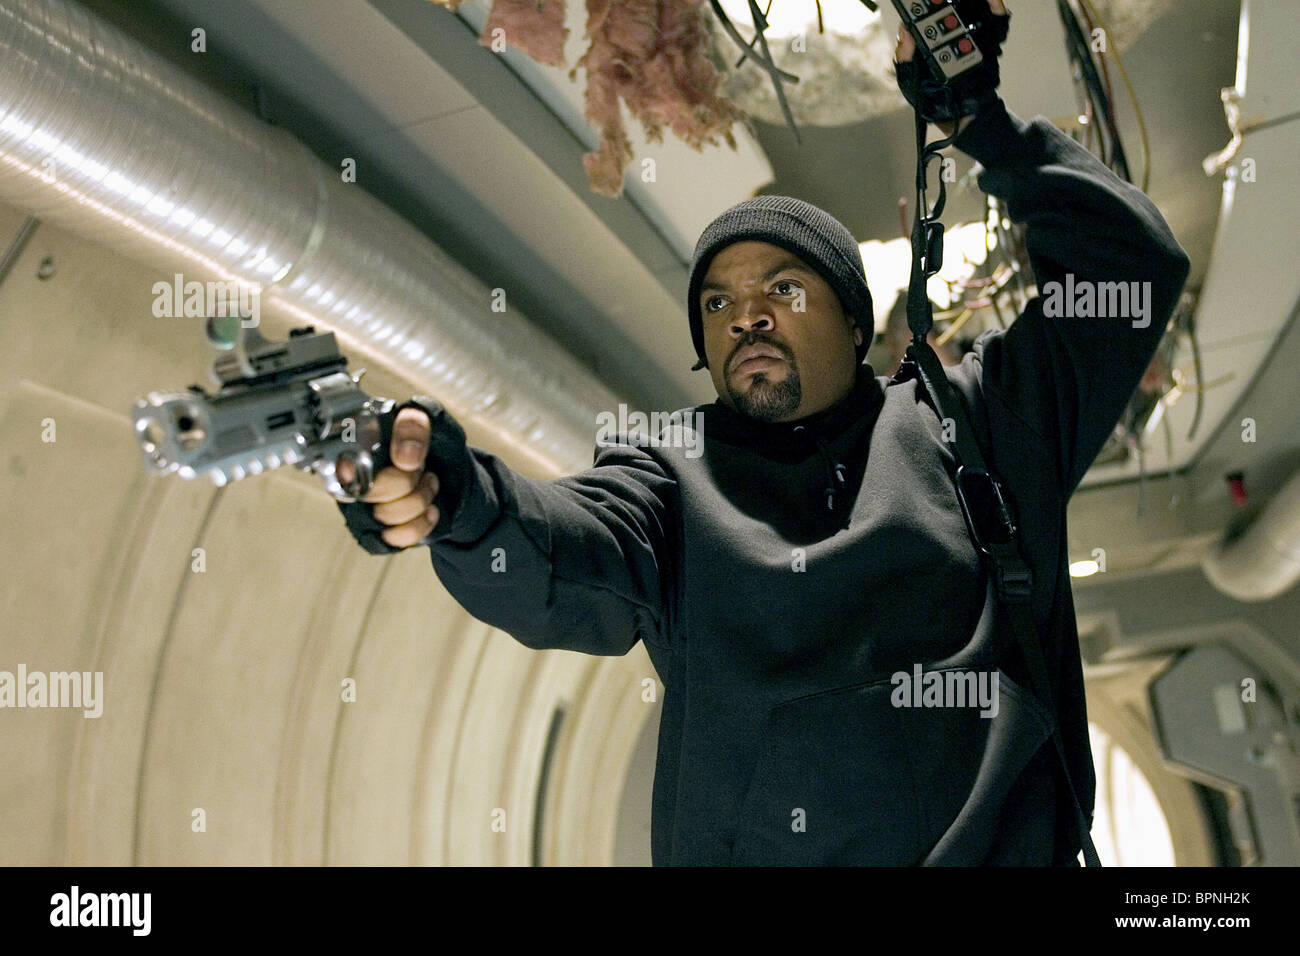 http://c8.alamy.com/comp/BPNH2K/ice-cube-xxx-state-of-the-union-xxx-2-the-next-level-2005-BPNH2K.jpg